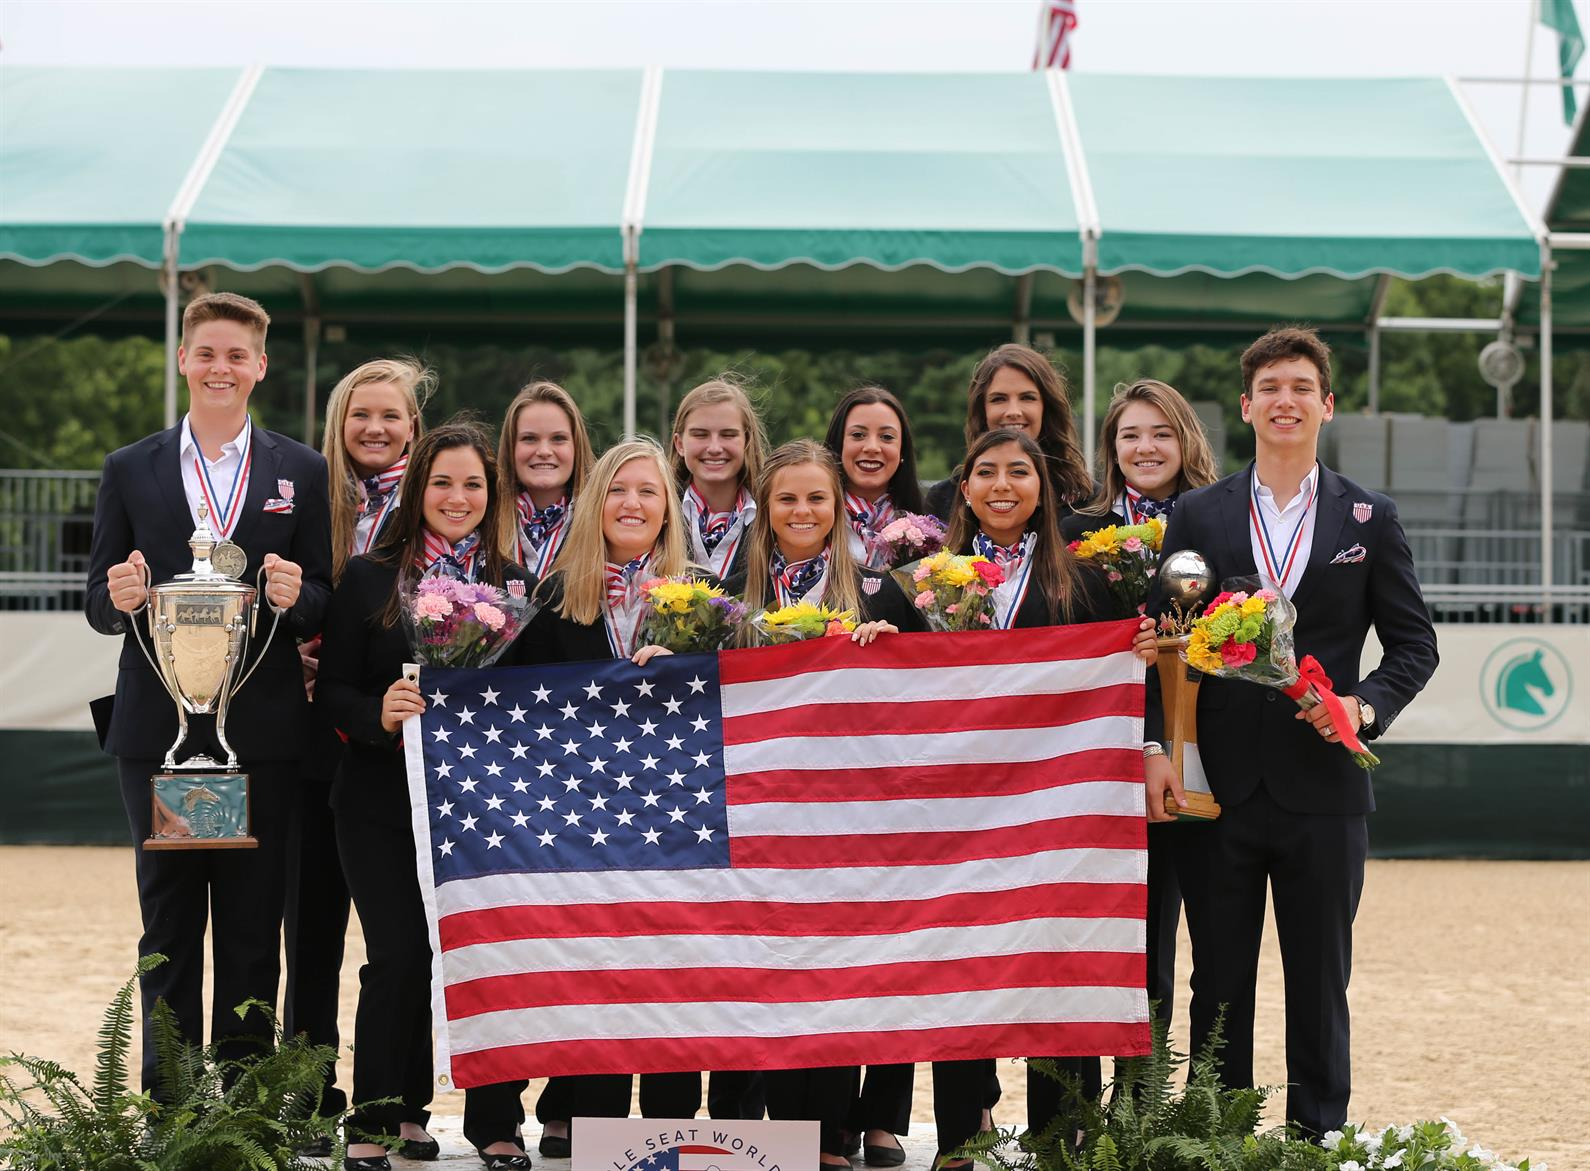 Us Saddle Seat Team Wins Double Gold At 2018 Saddle Seat World Cup